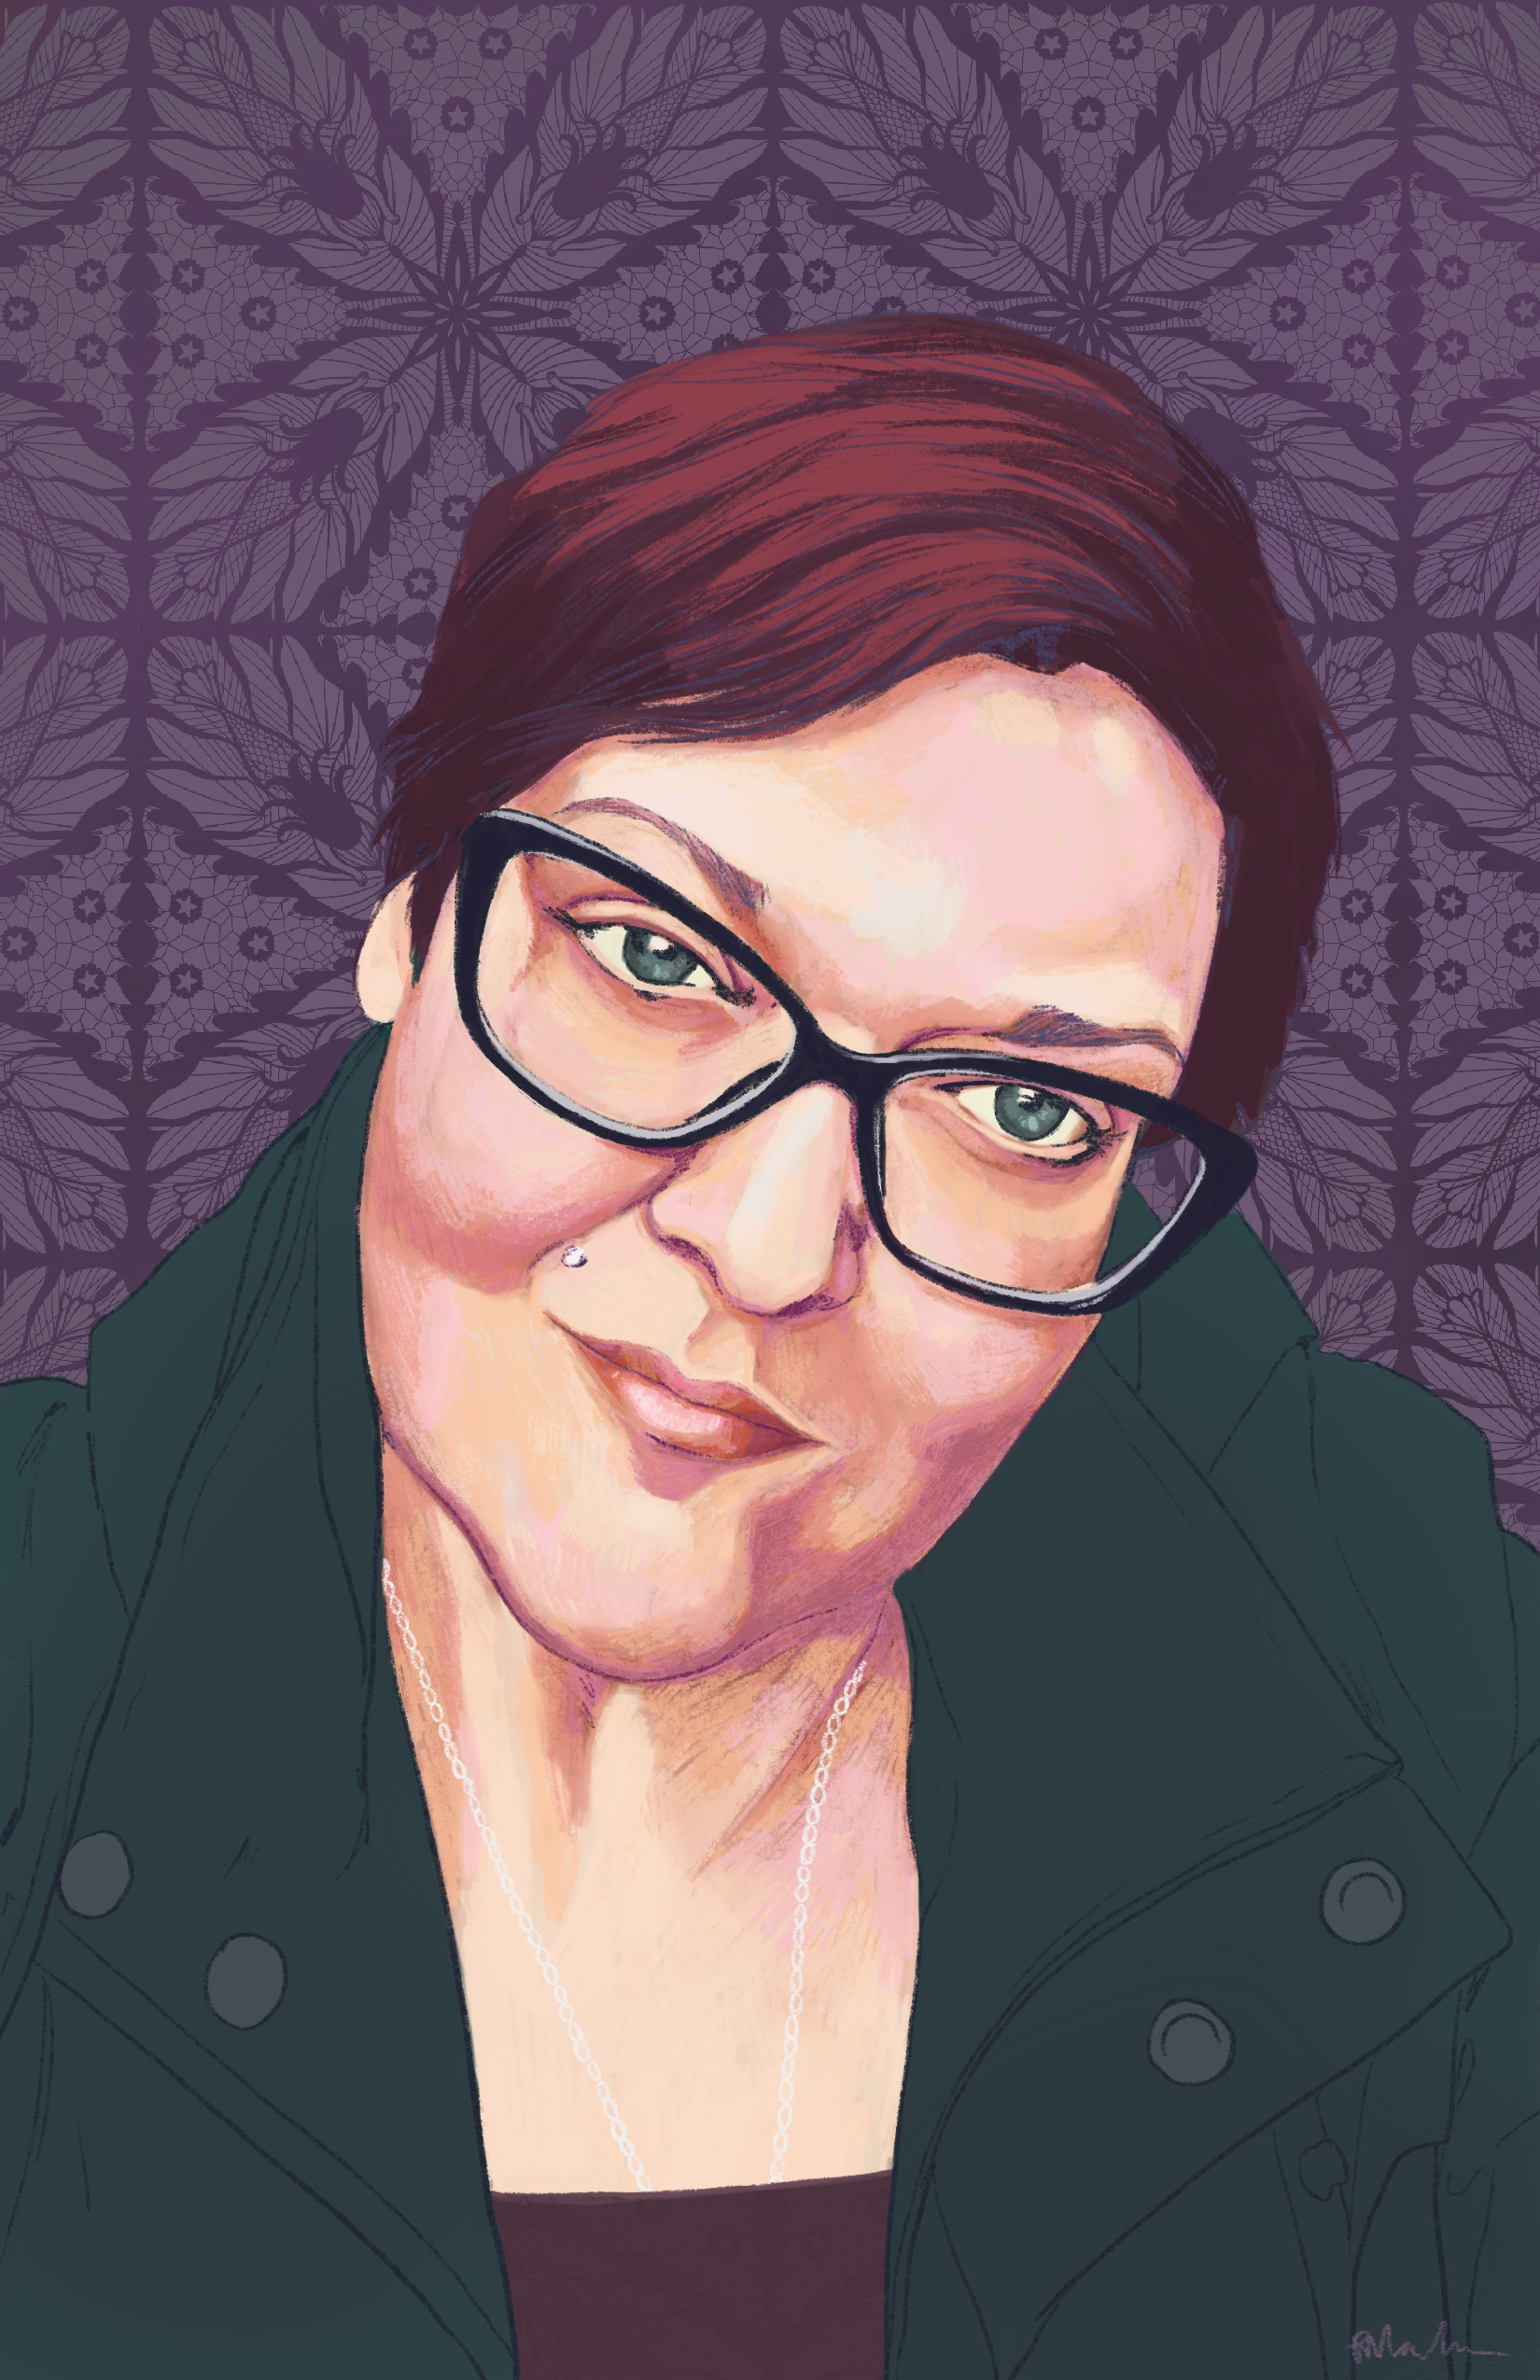 Digital painting of Kelly. She is smiling with her mouth closed and her head tilted. She is Caucasian with brown short hair, black glasses and a dark green coat. The background is dark purple with a darker purple abstract design.